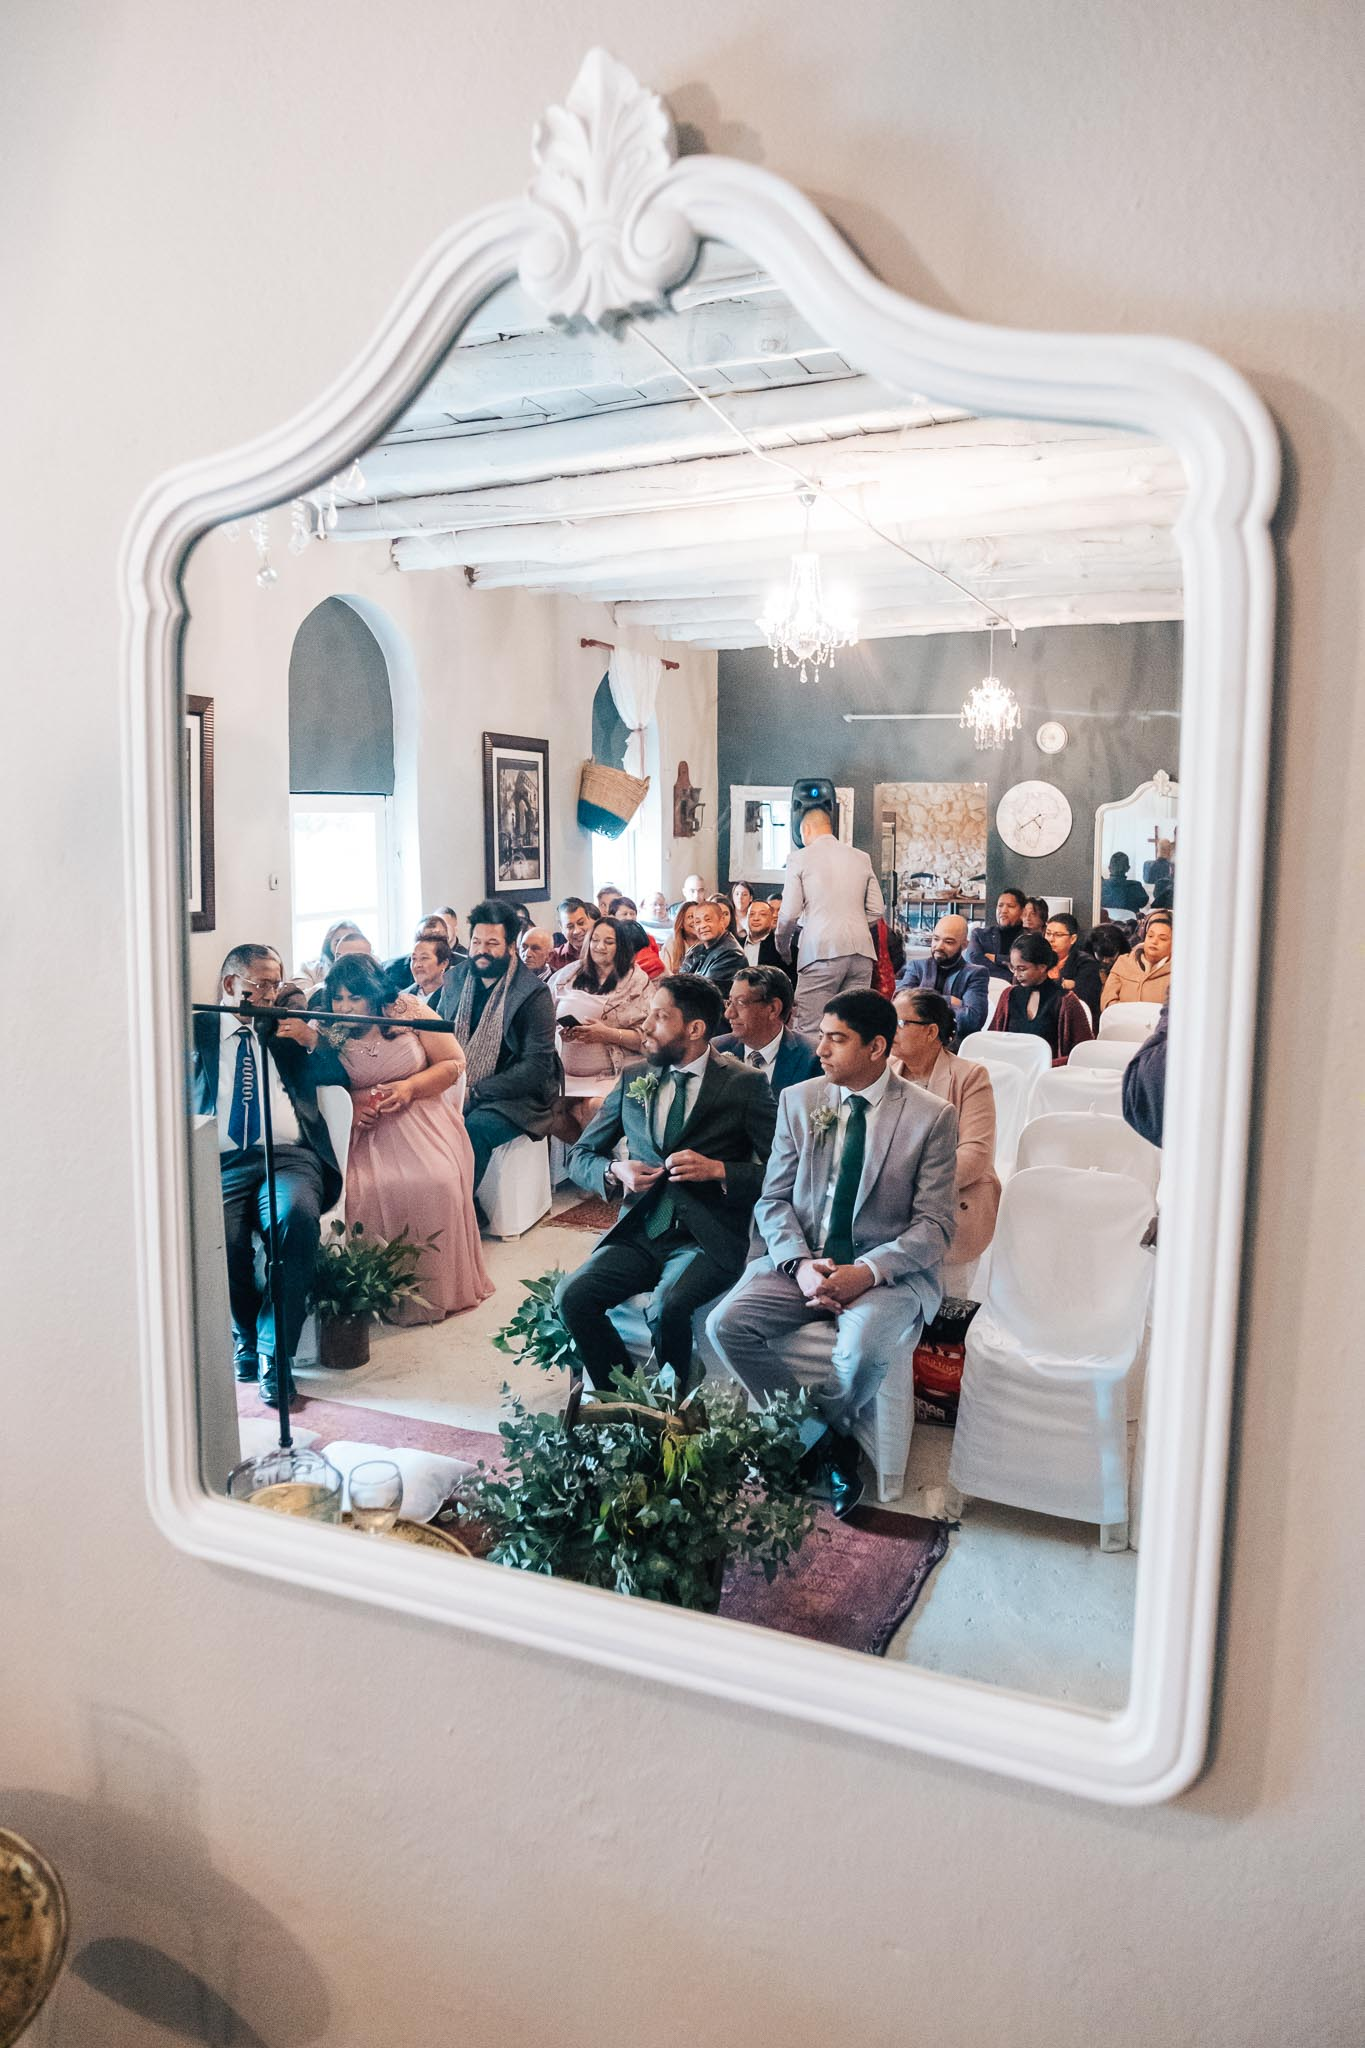 Ceremony reflected in a mirror